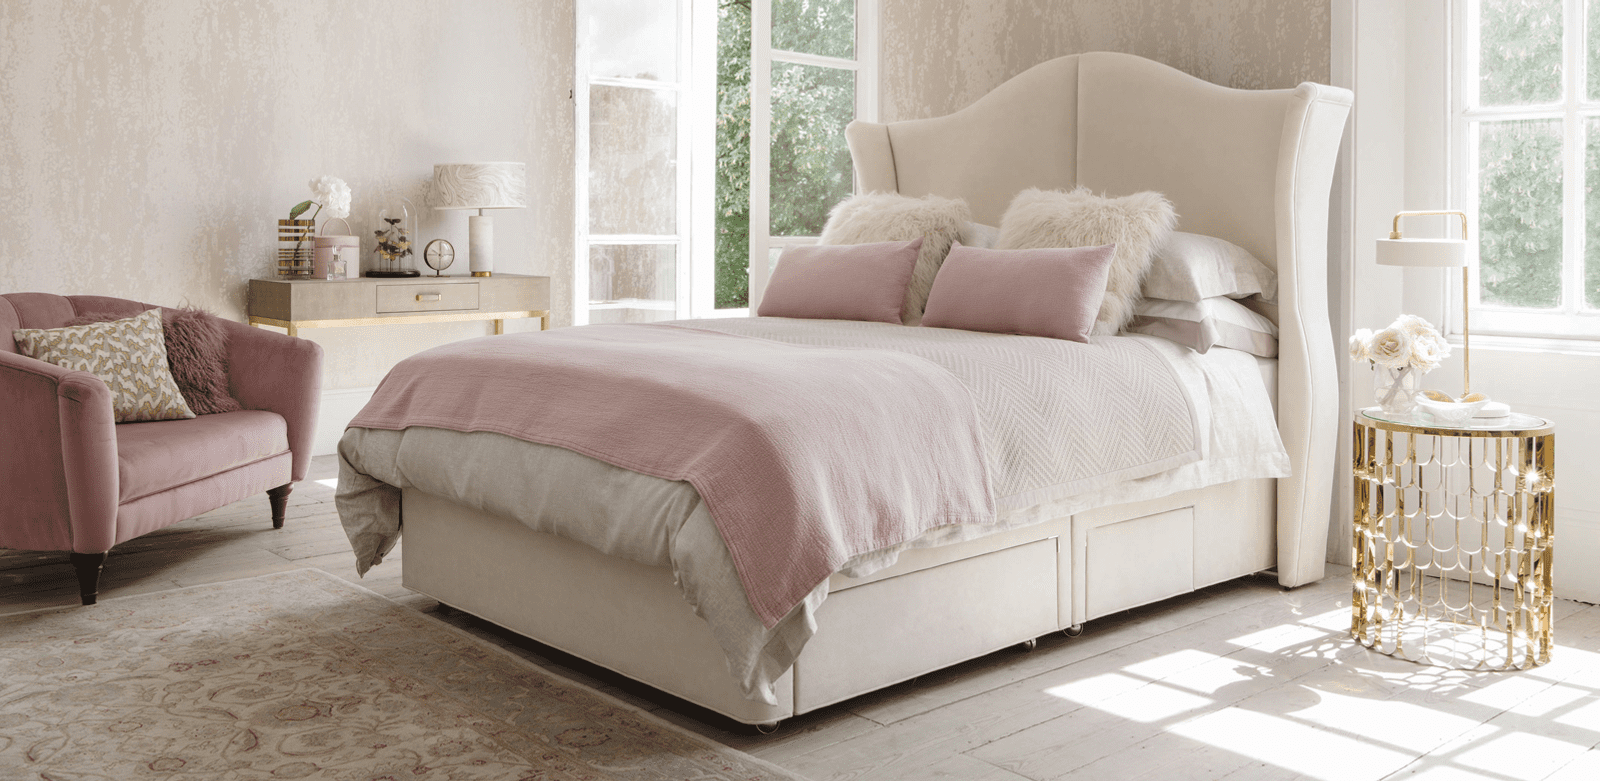 Natural Comfort Willow Sublime Hypnos Beds